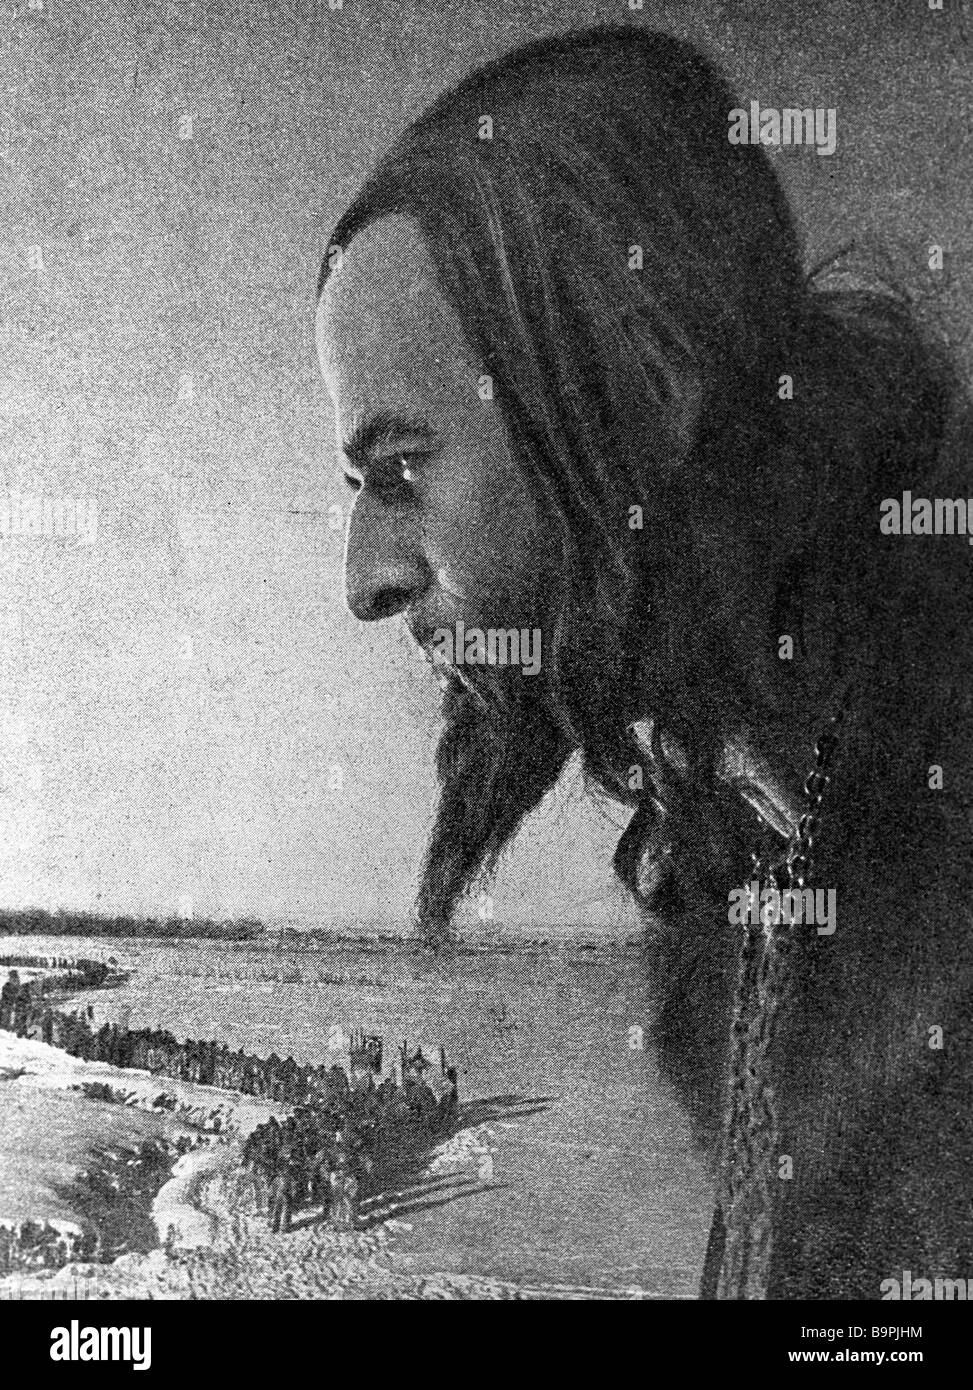 Nikolai Cherkasov as Ivan Grozny Ivan the Terrible in a scene from the film Ivan Grozny by Sergei Eisenstein - Stock Image